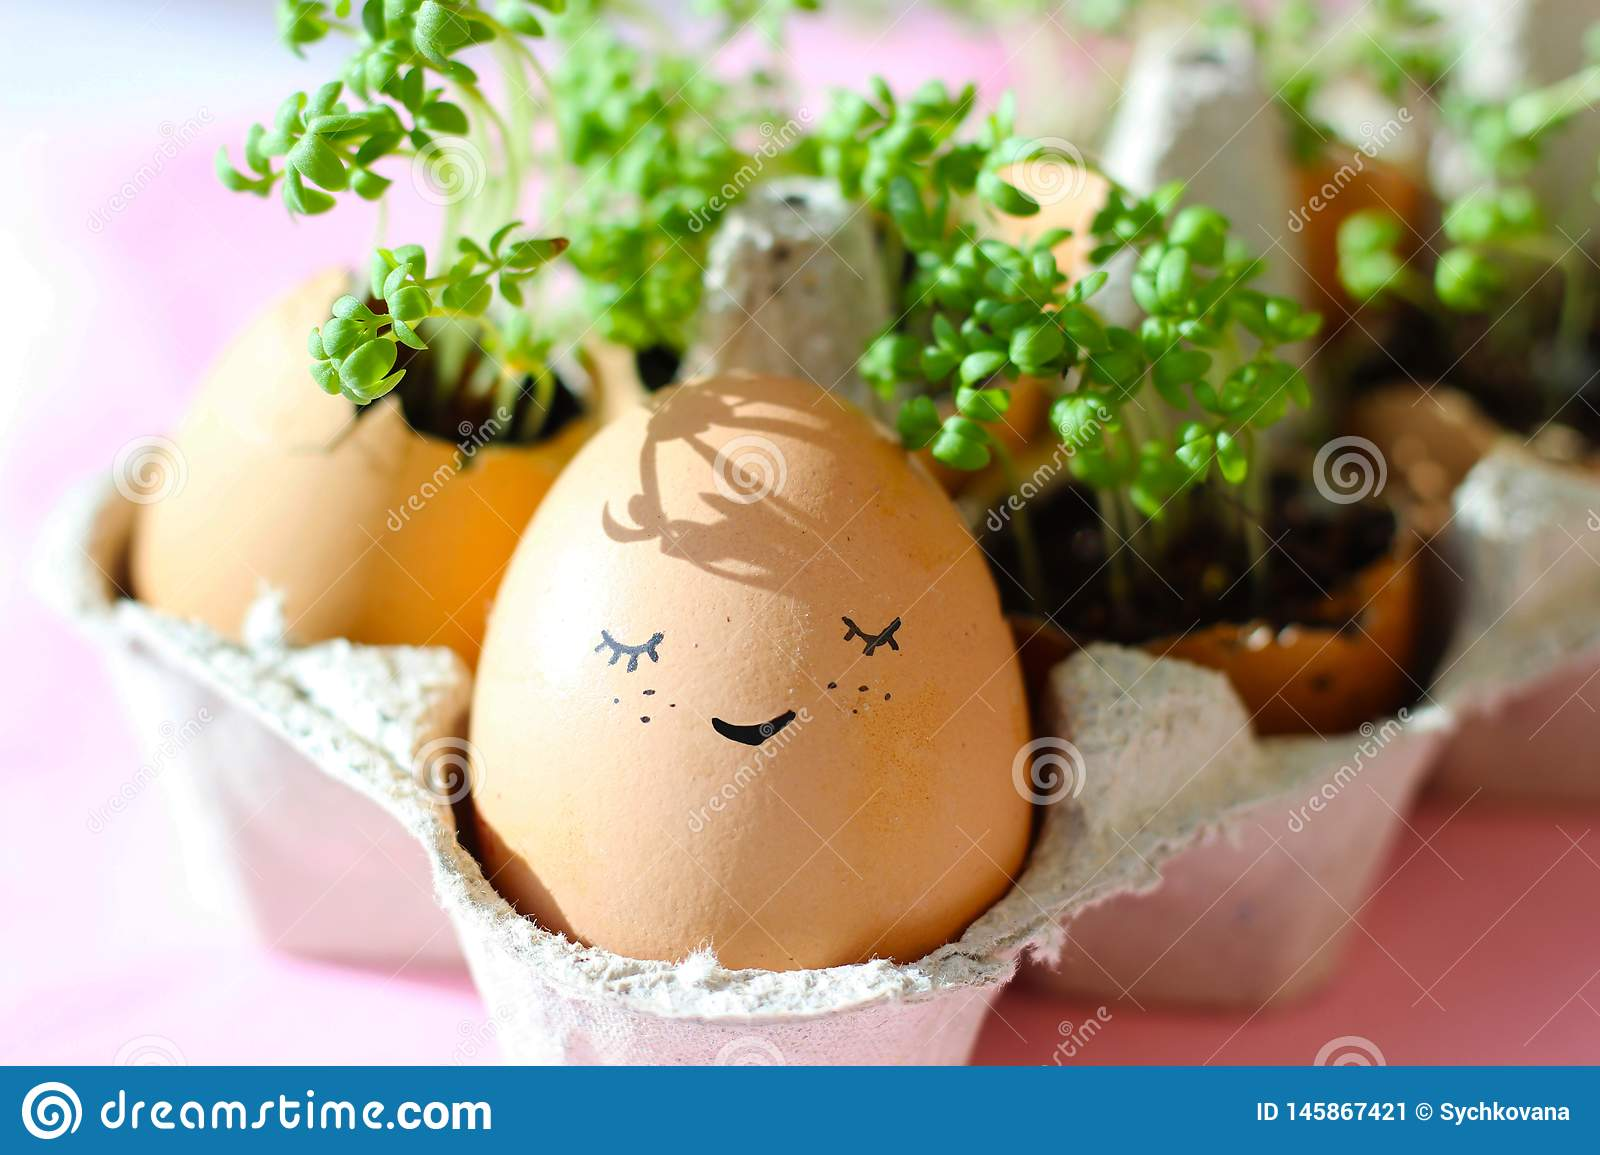 The fresh green grass growing in an egg shell with the funny persons drawn on it. The idea of spring creativity for